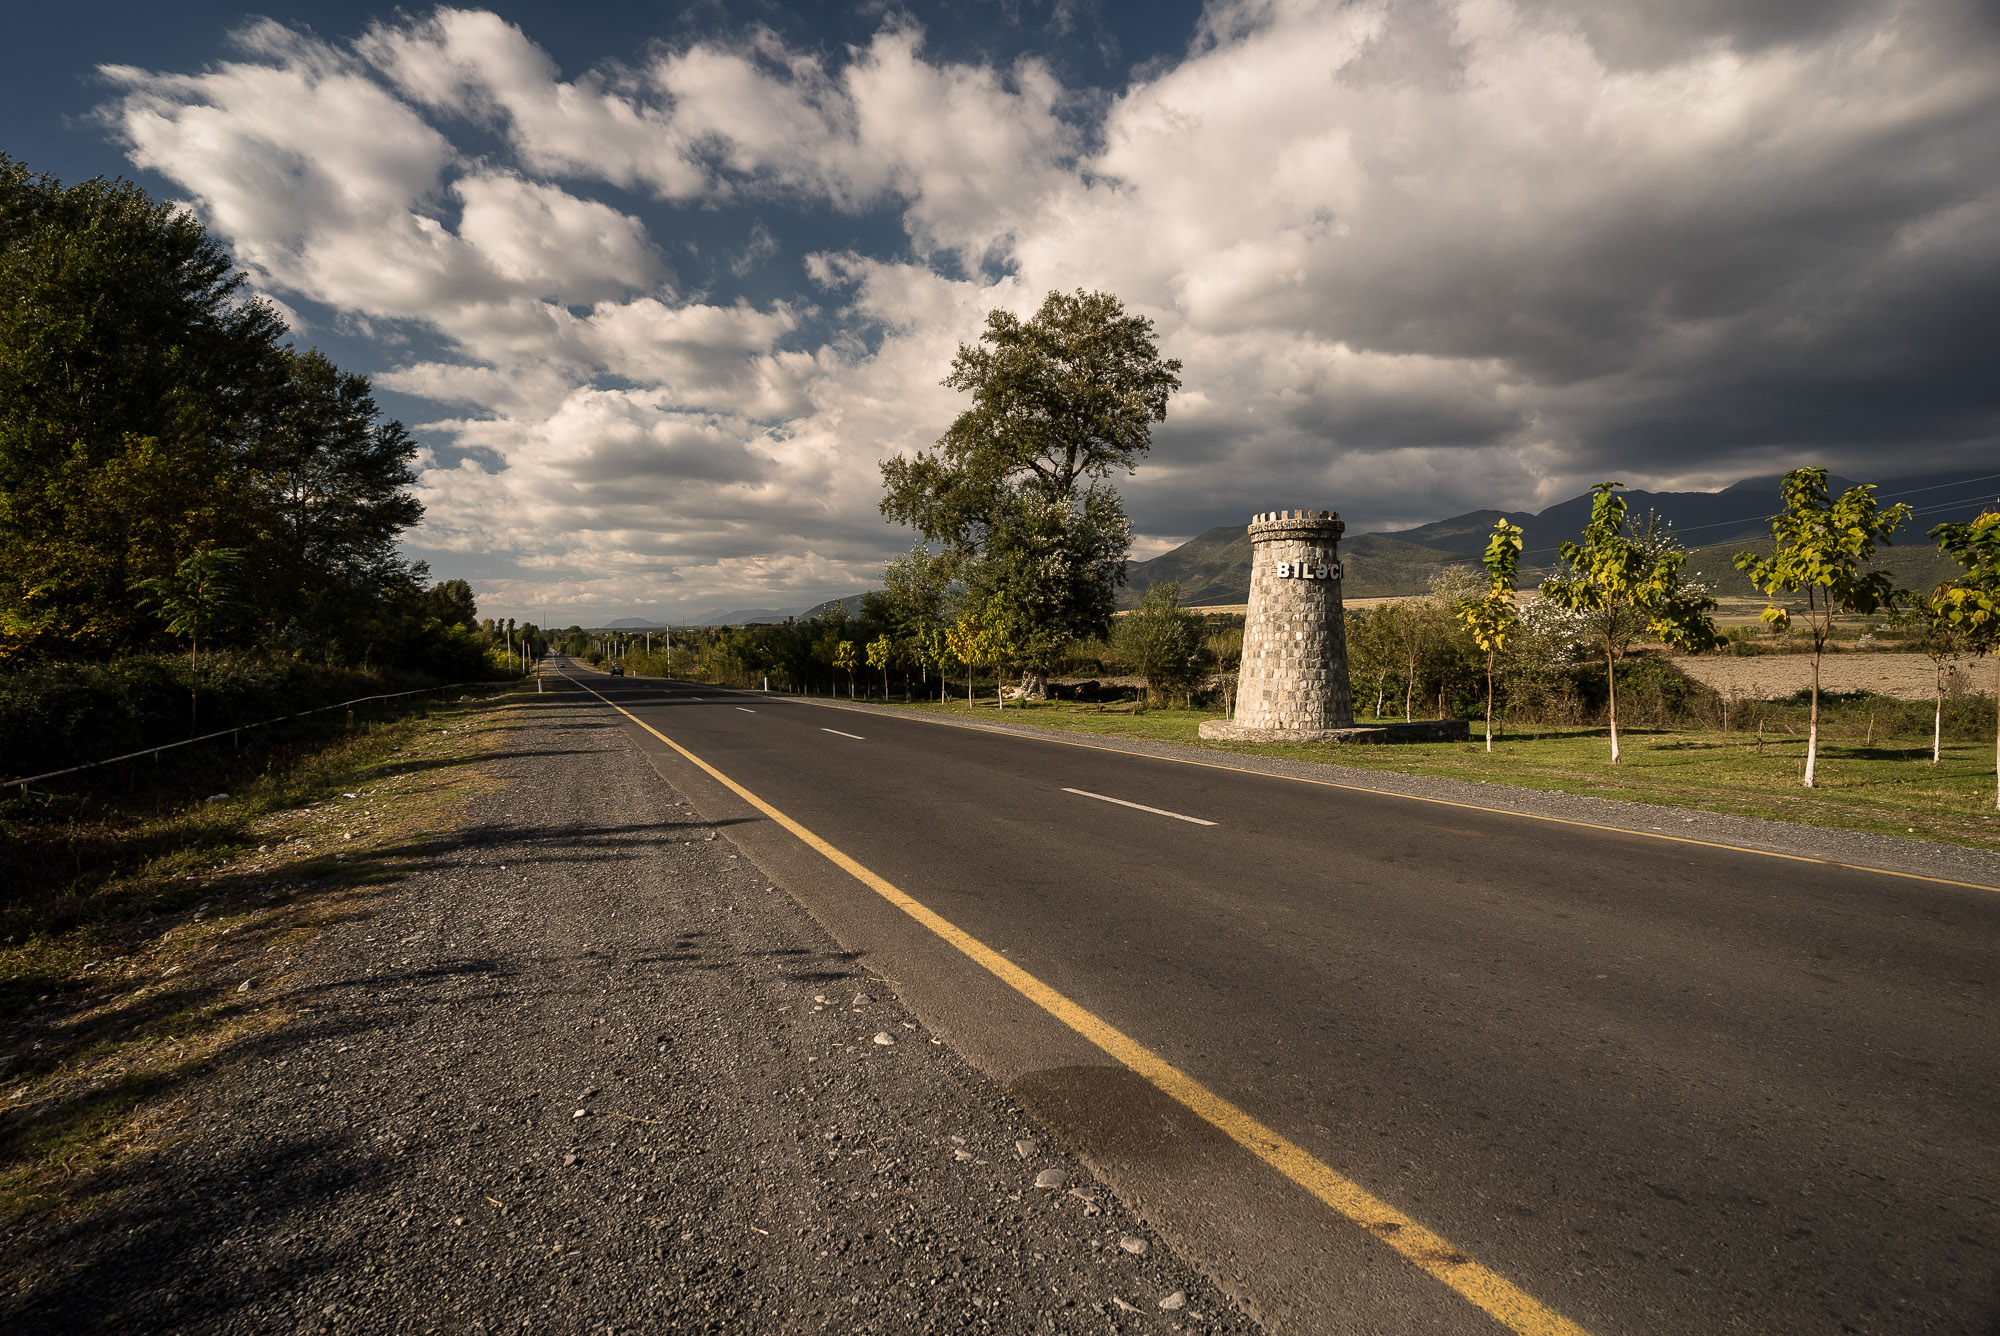 road with monument